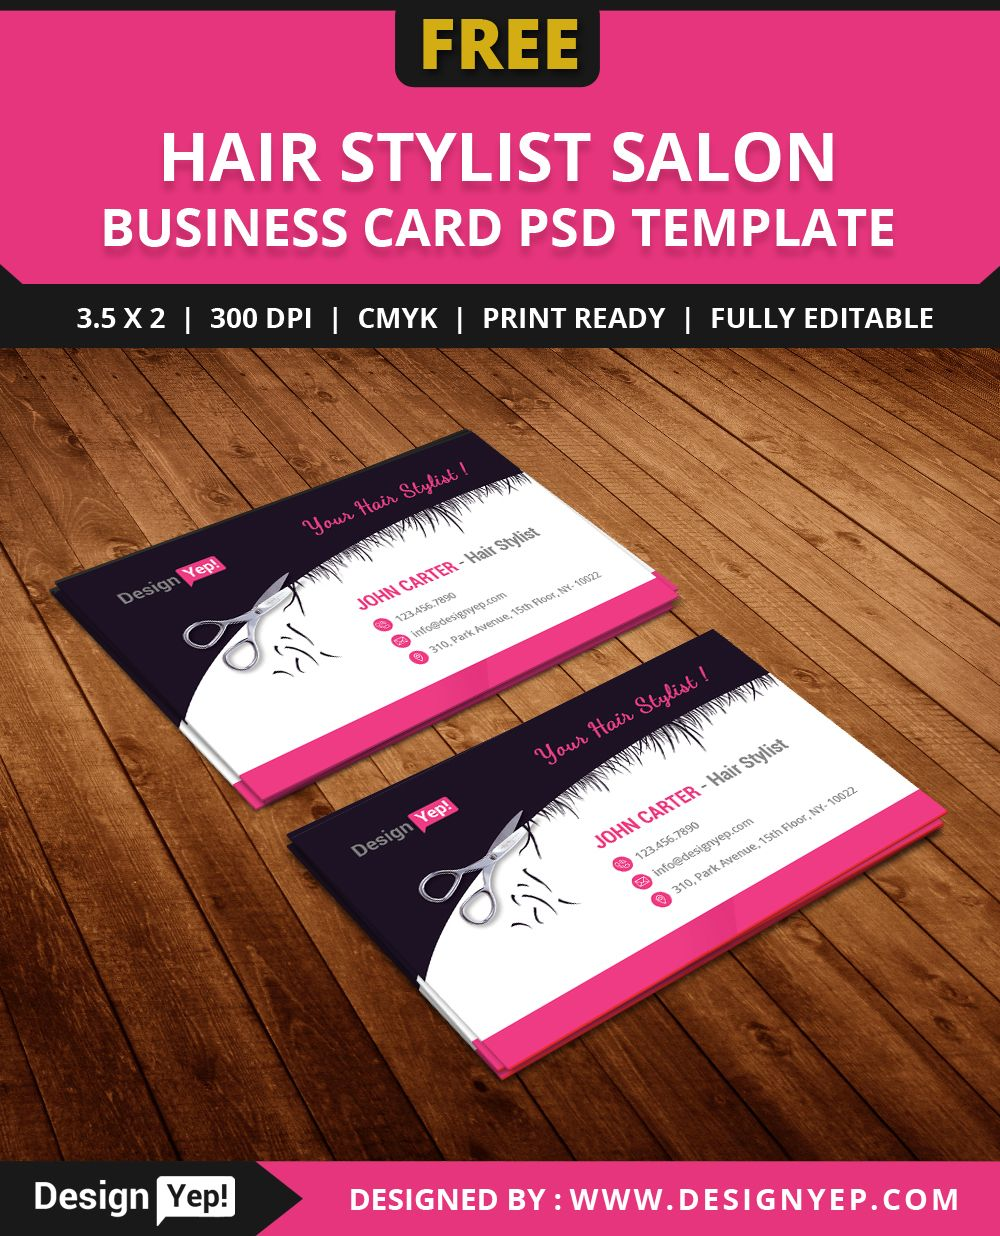 Free hair stylist salon business card template psd free business free hair stylist salon business card template psd colourmoves